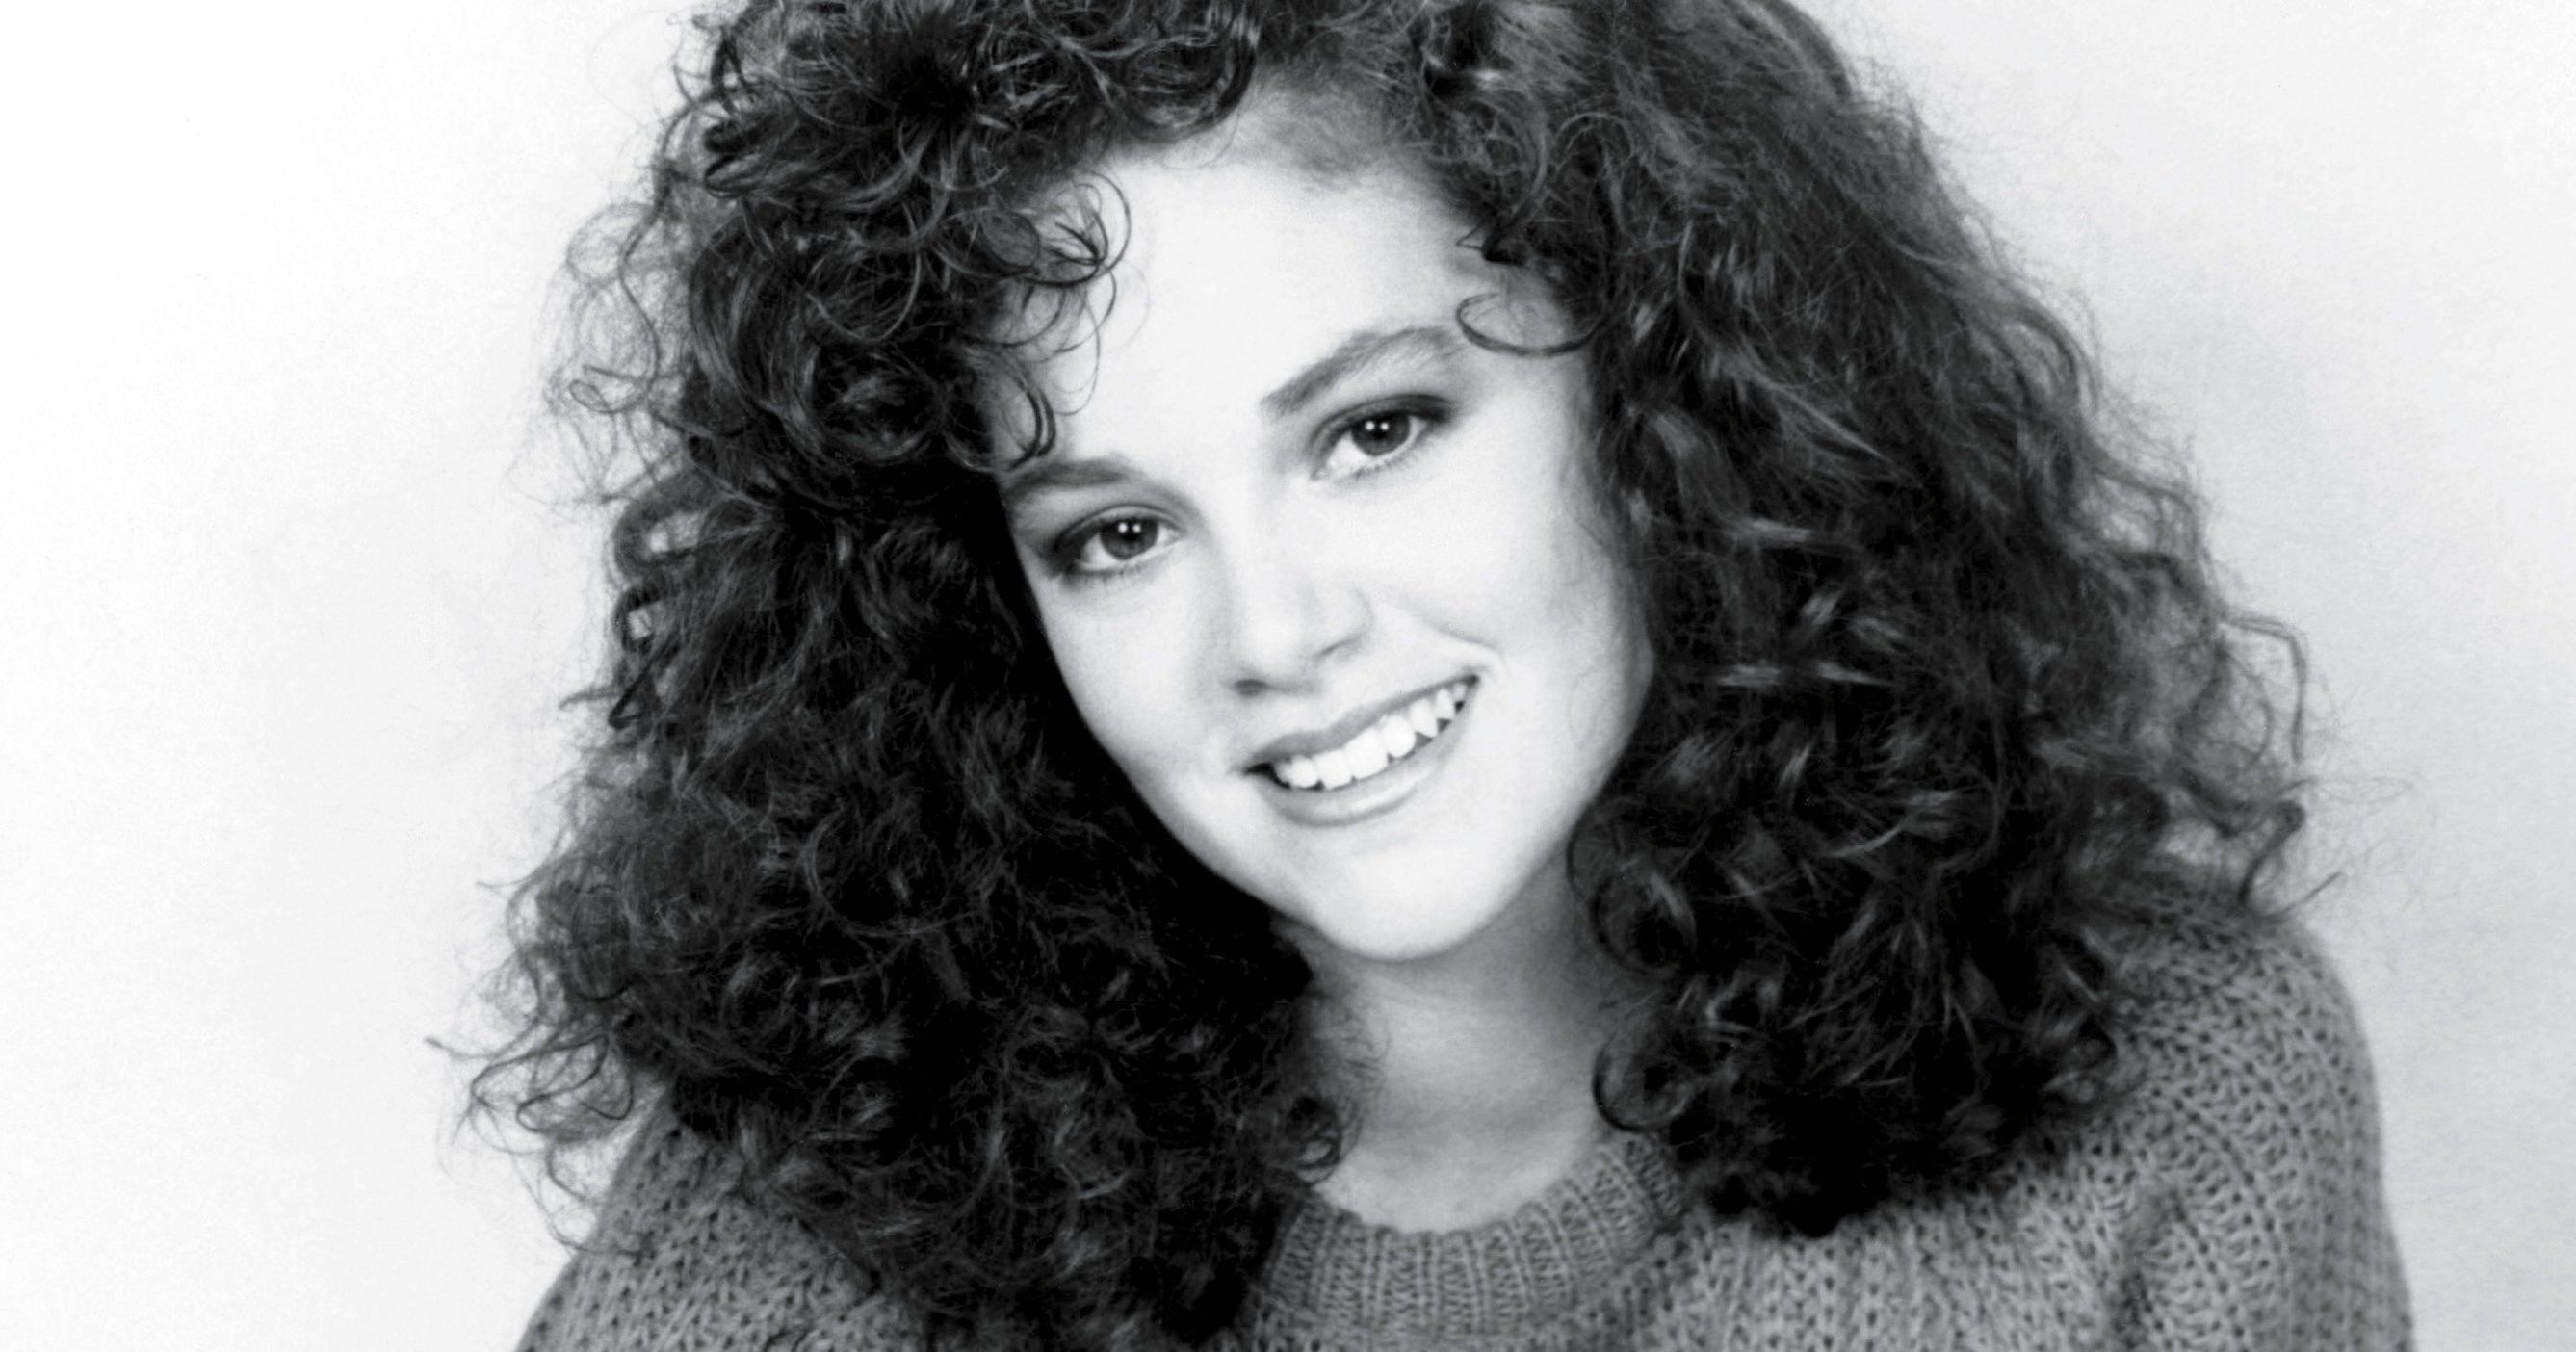 the death of rebecca schaeffer a modern crime A judge found an obsessed fan guilty tuesday of first-degree murder for gunning down actress rebecca schaeffer in 1989, saying the crime was premeditated and.